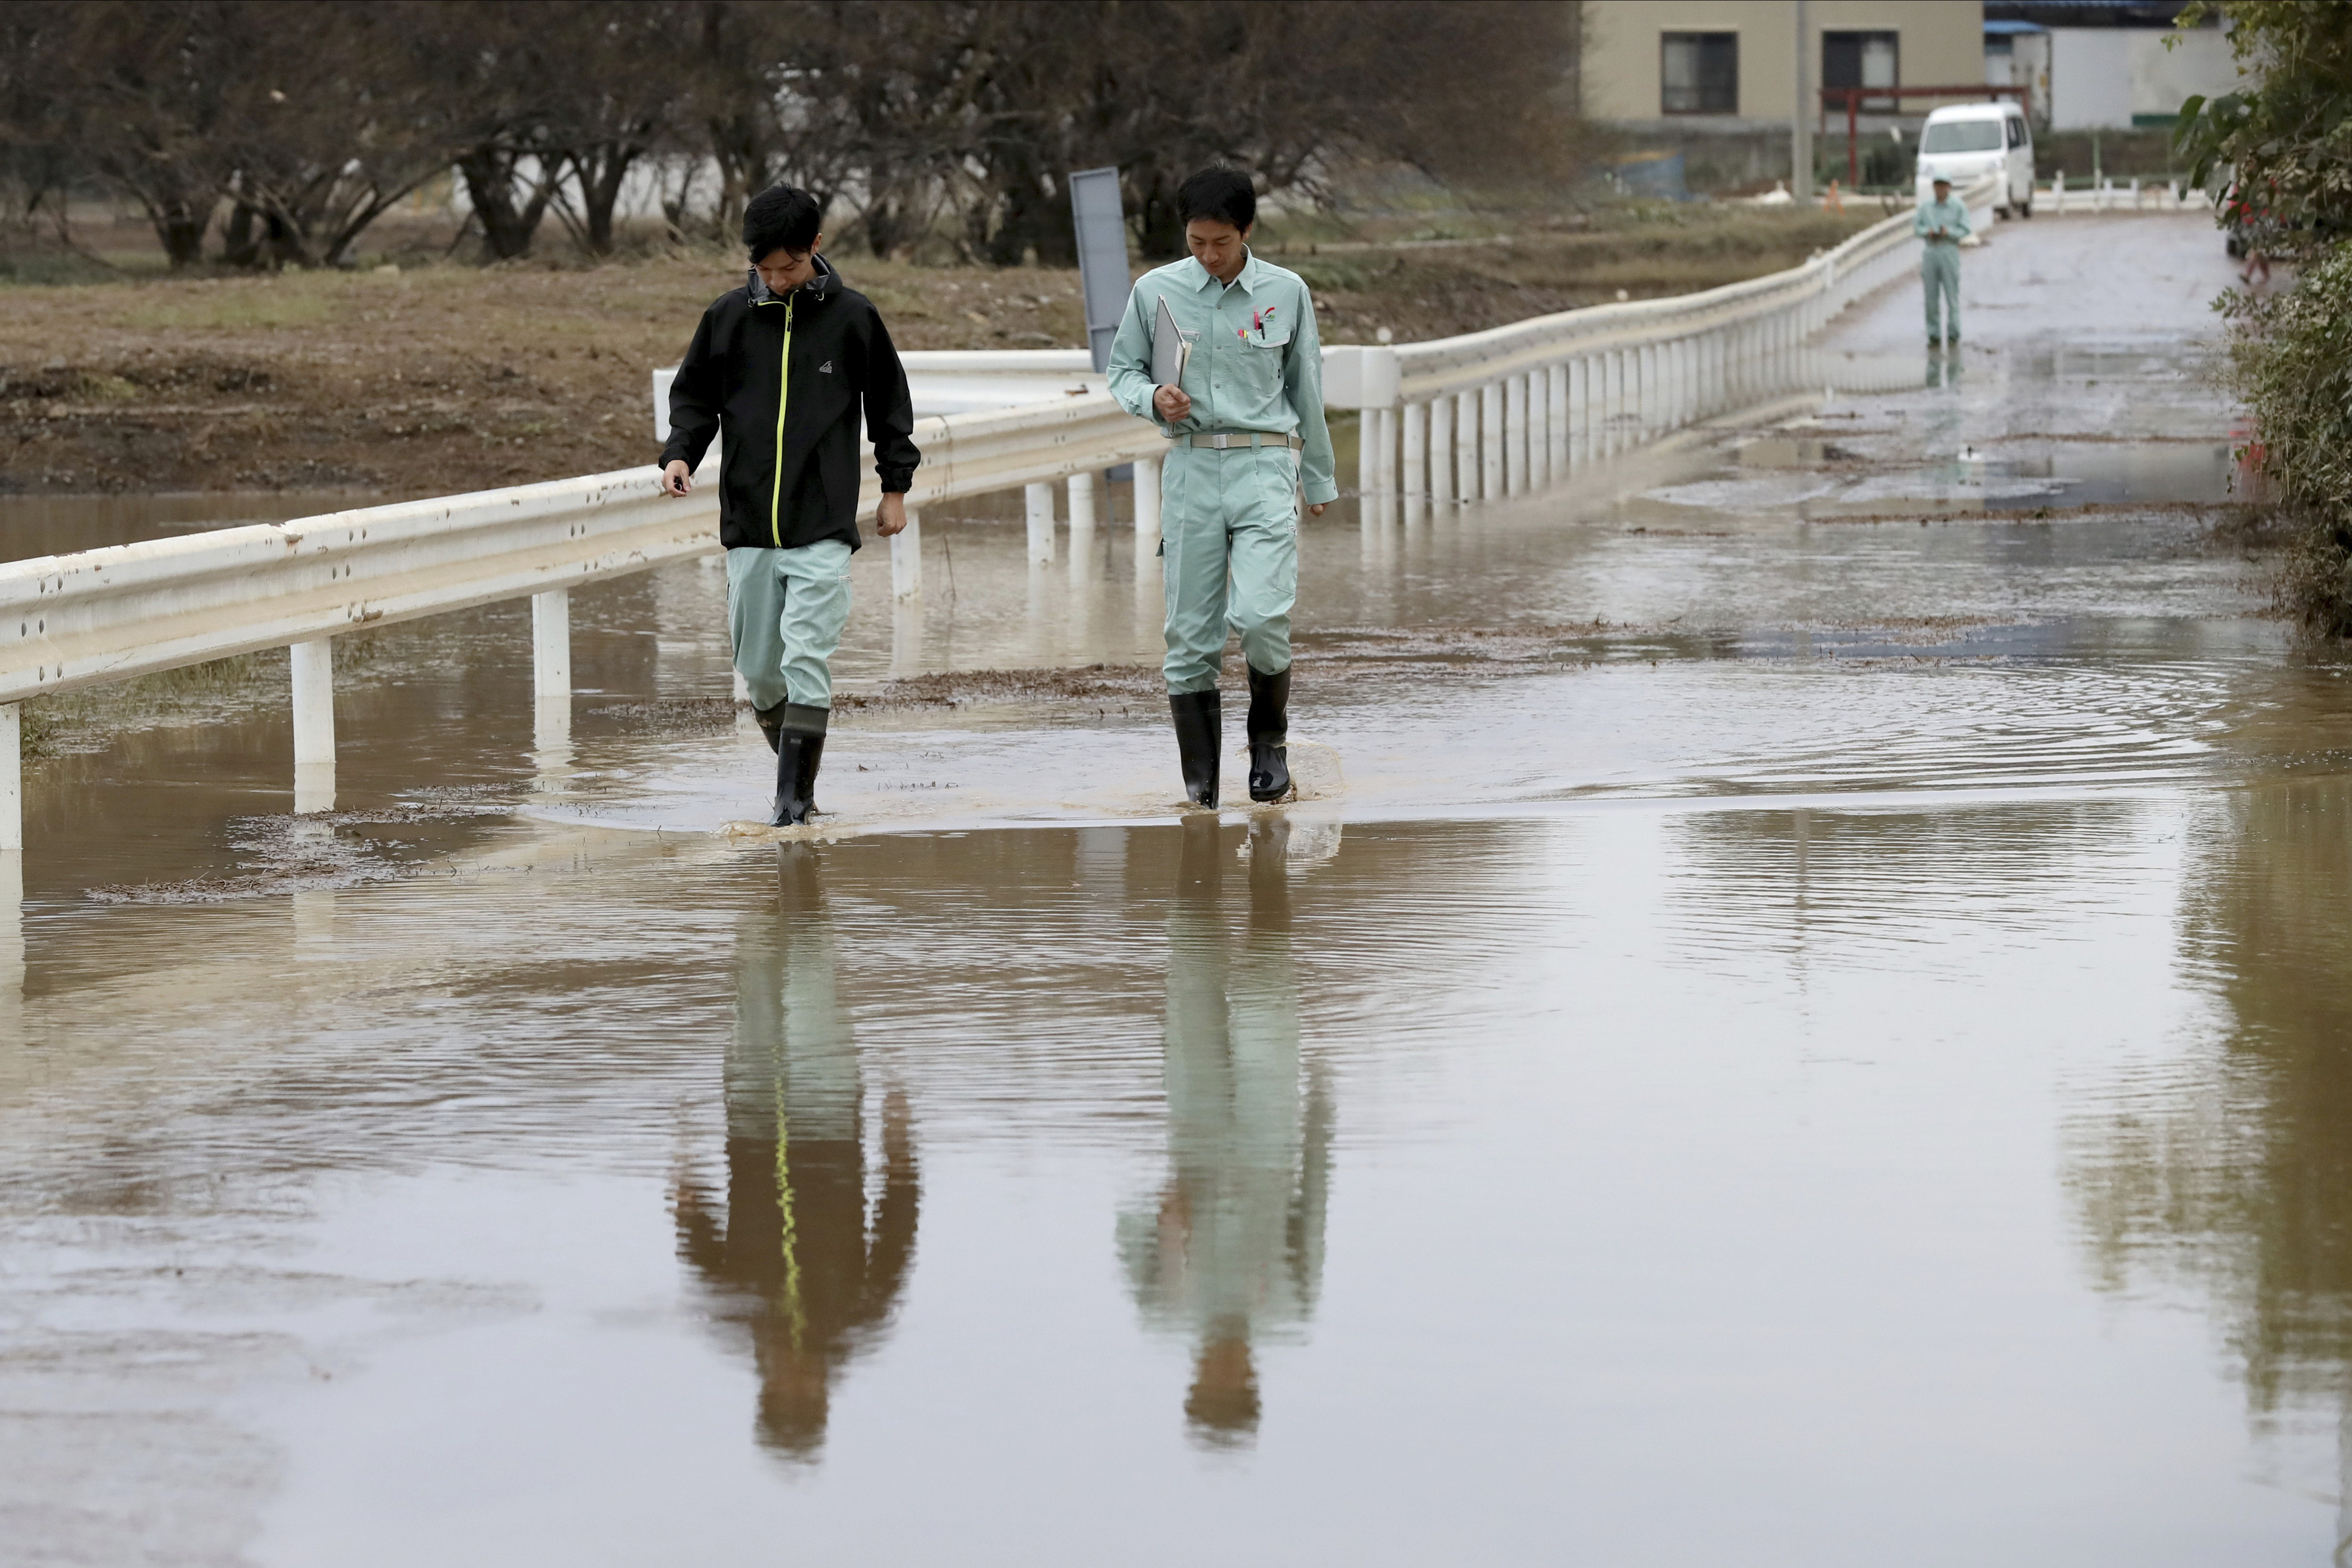 Workers survey a flooded street Monday, Oct. 14, 2019, in Kawagoe City, Japan. Rescue crews are digging through mudslides and searching near swollen rivers for missing people after Typhoon Hagibis caused serious damage in central and northern Japan. Dozens of people are dead or missing. (AP Photo/Eugene Hoshiko)